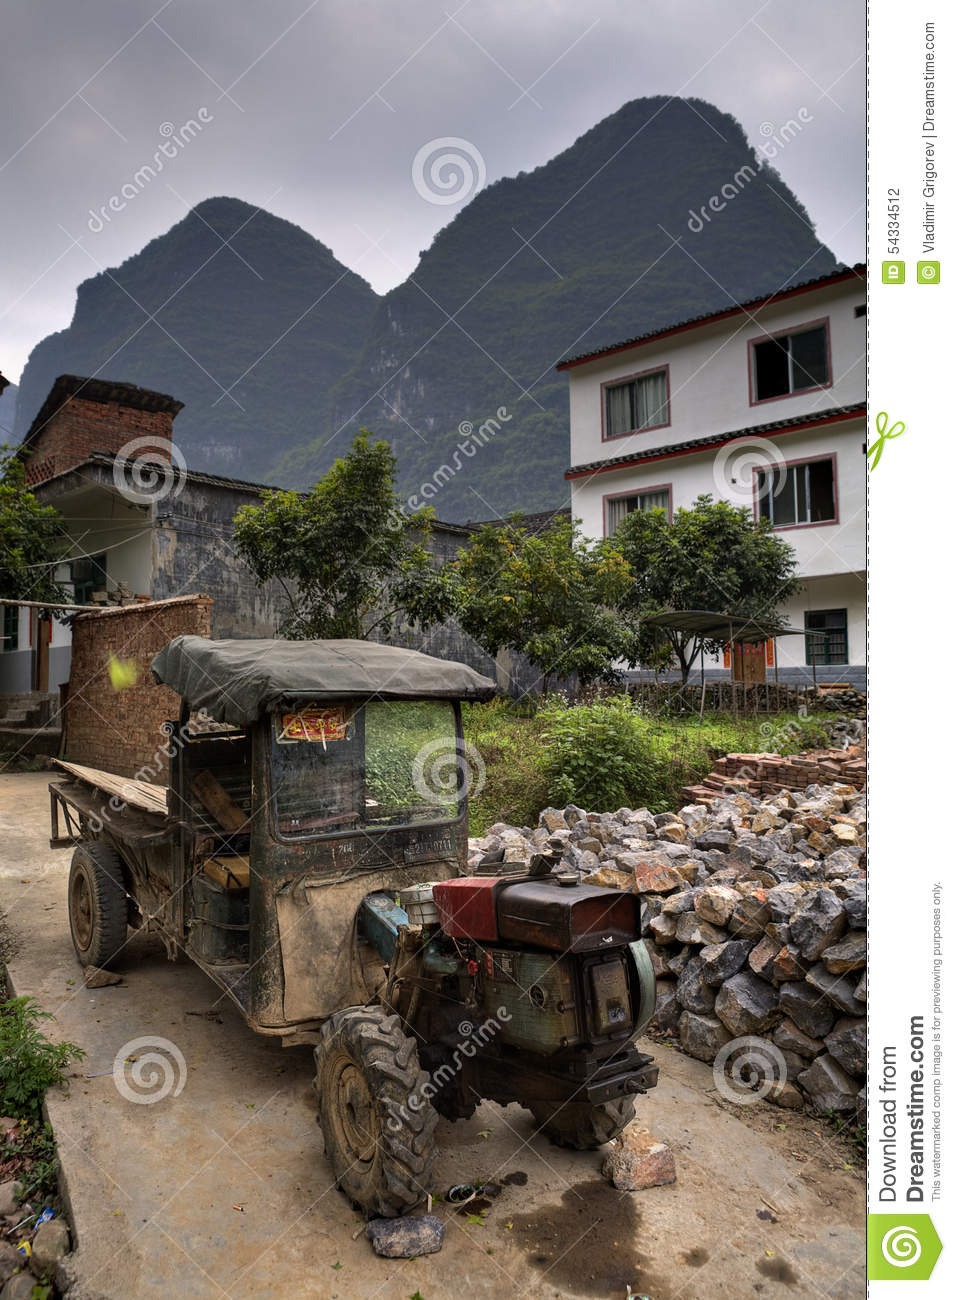 Chinese Antique Tractors : Battered ancient farmer tractor stands in peasant village